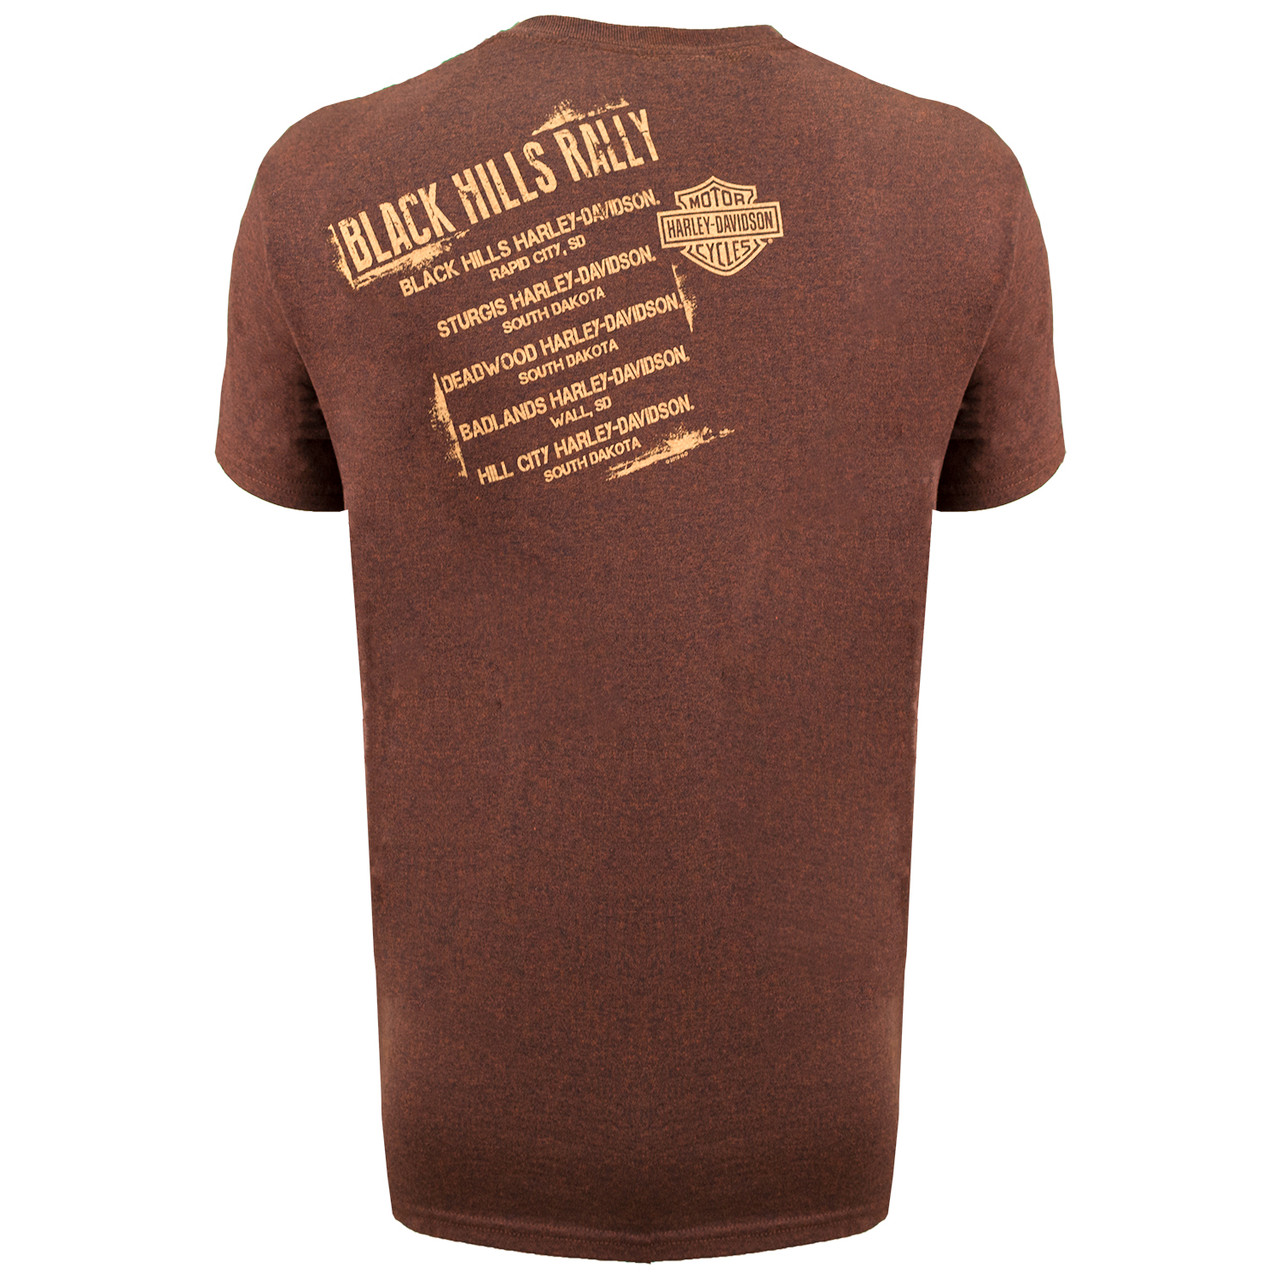 2019 Sturgis Harley-Davidson Men's Shoulder 79th Rally T-Shirt